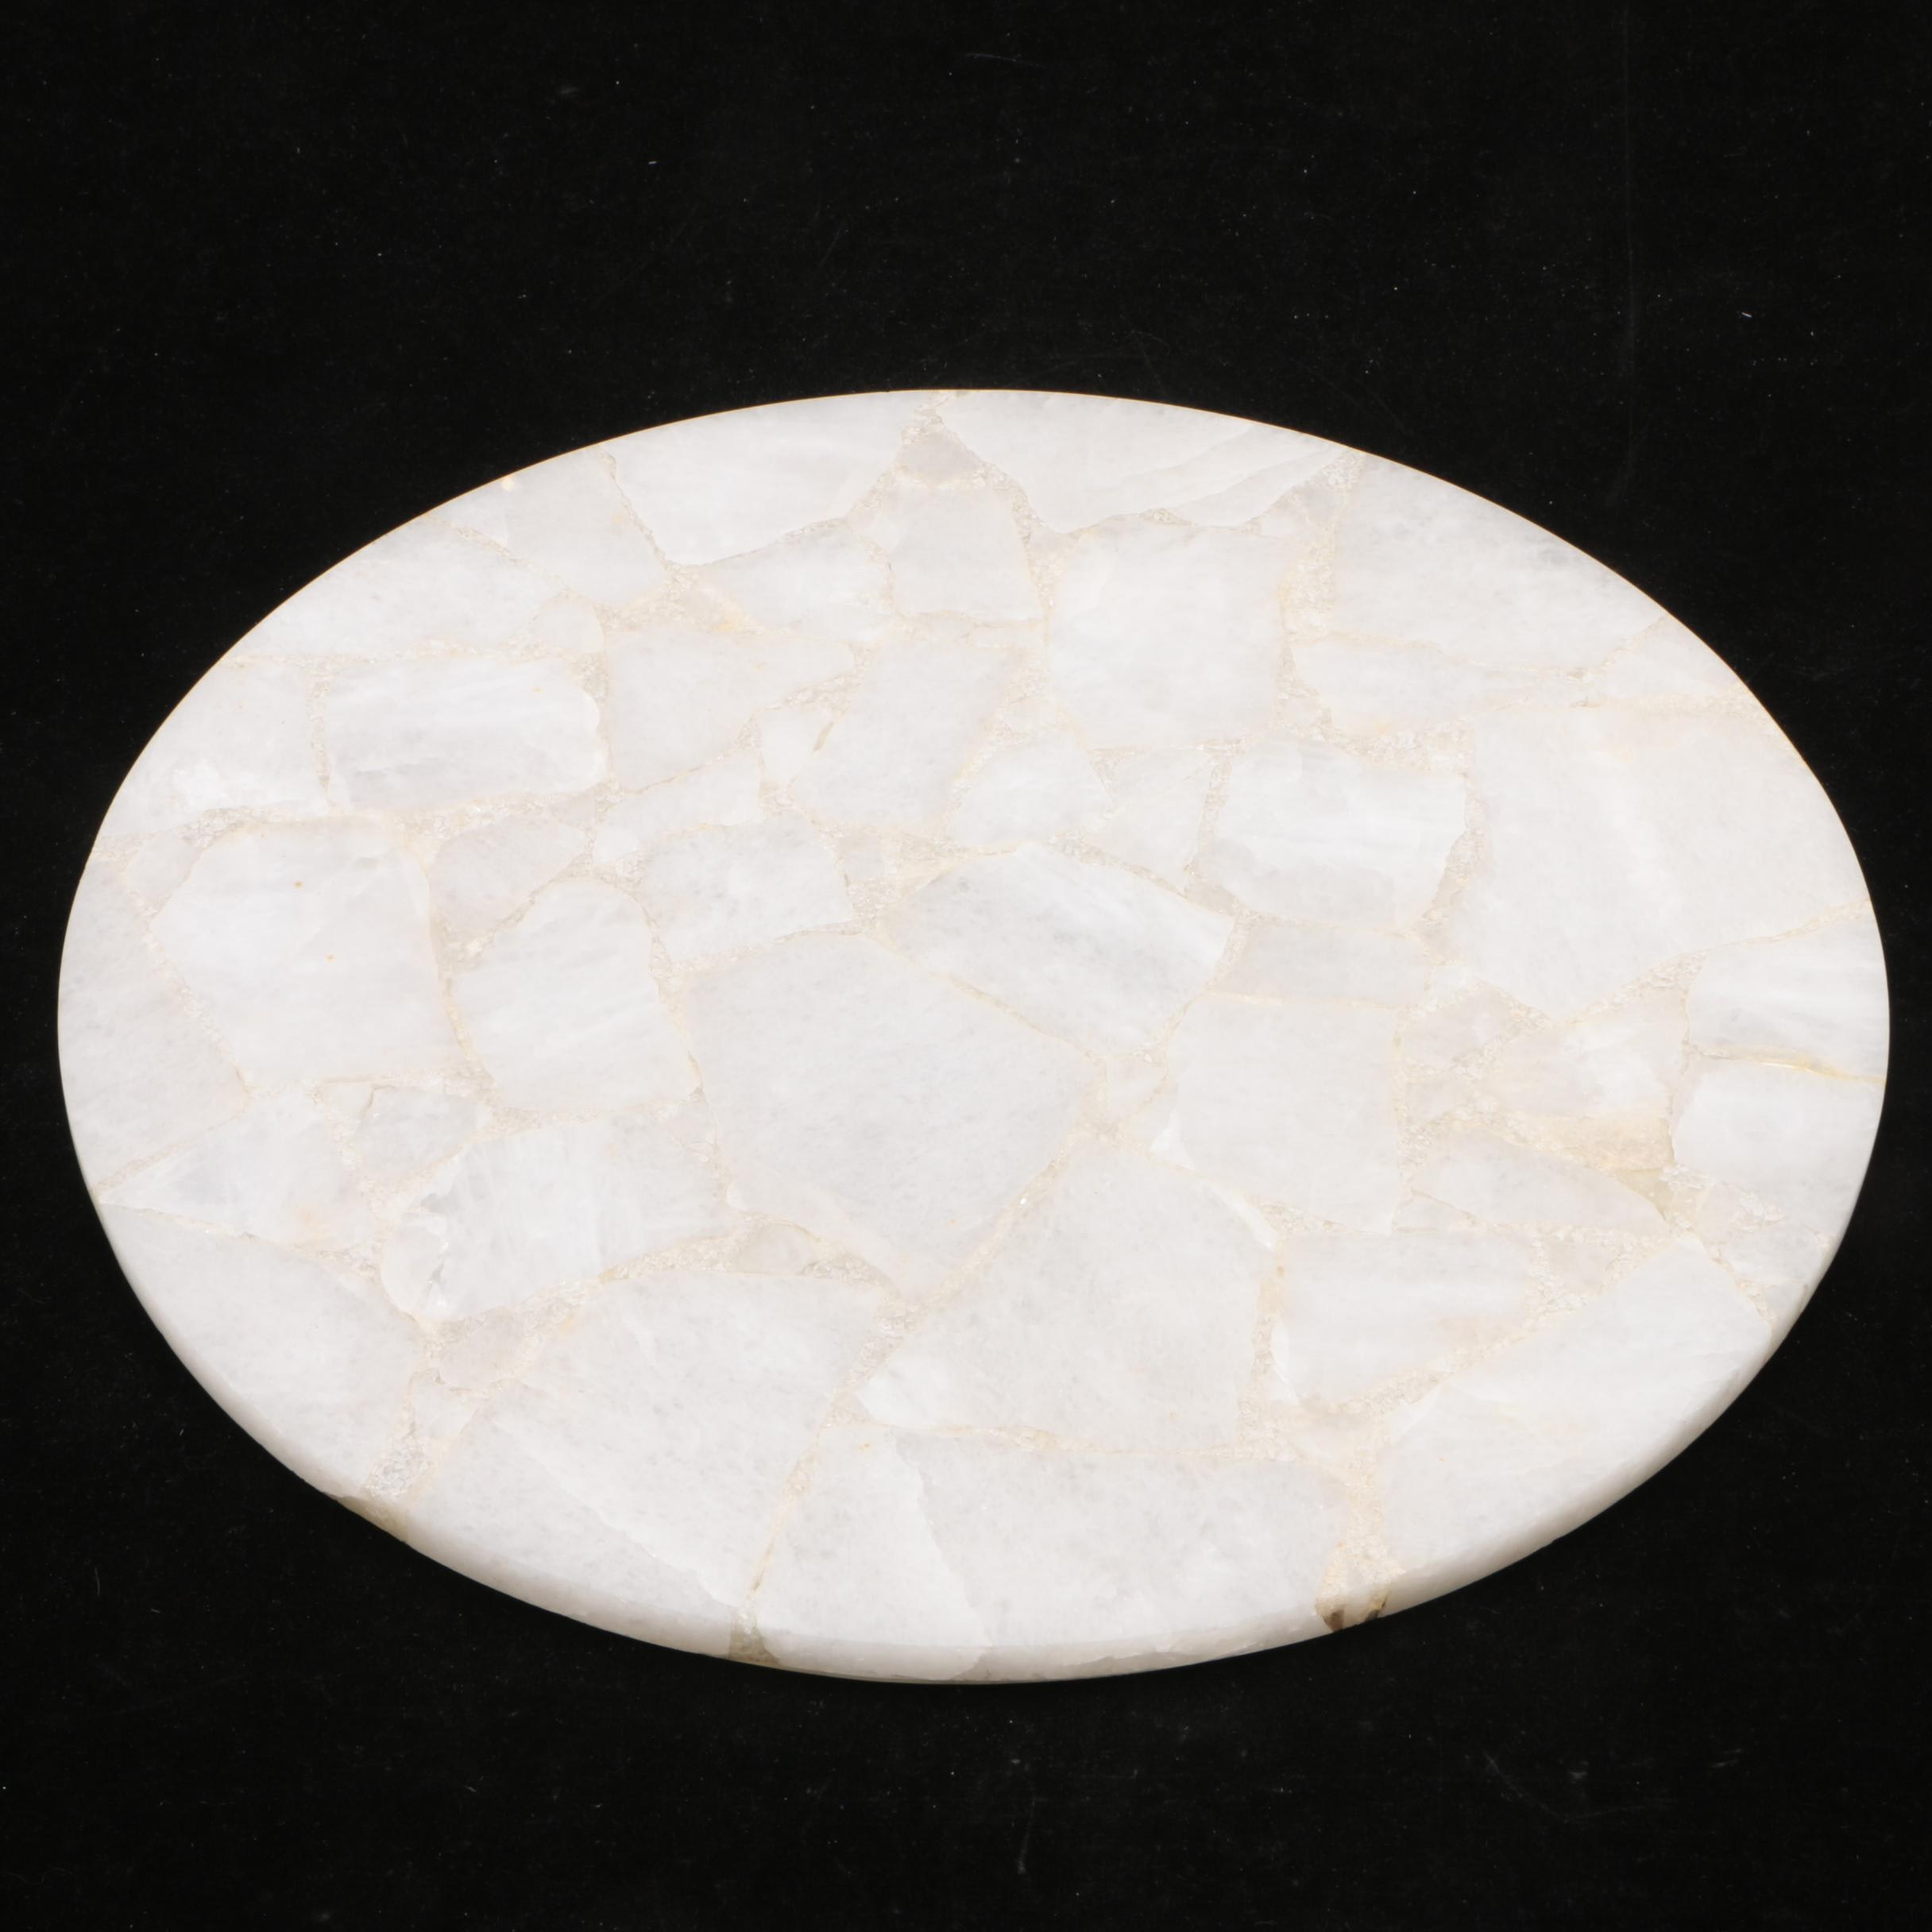 Polished White Quartz Table Top, 21st Century